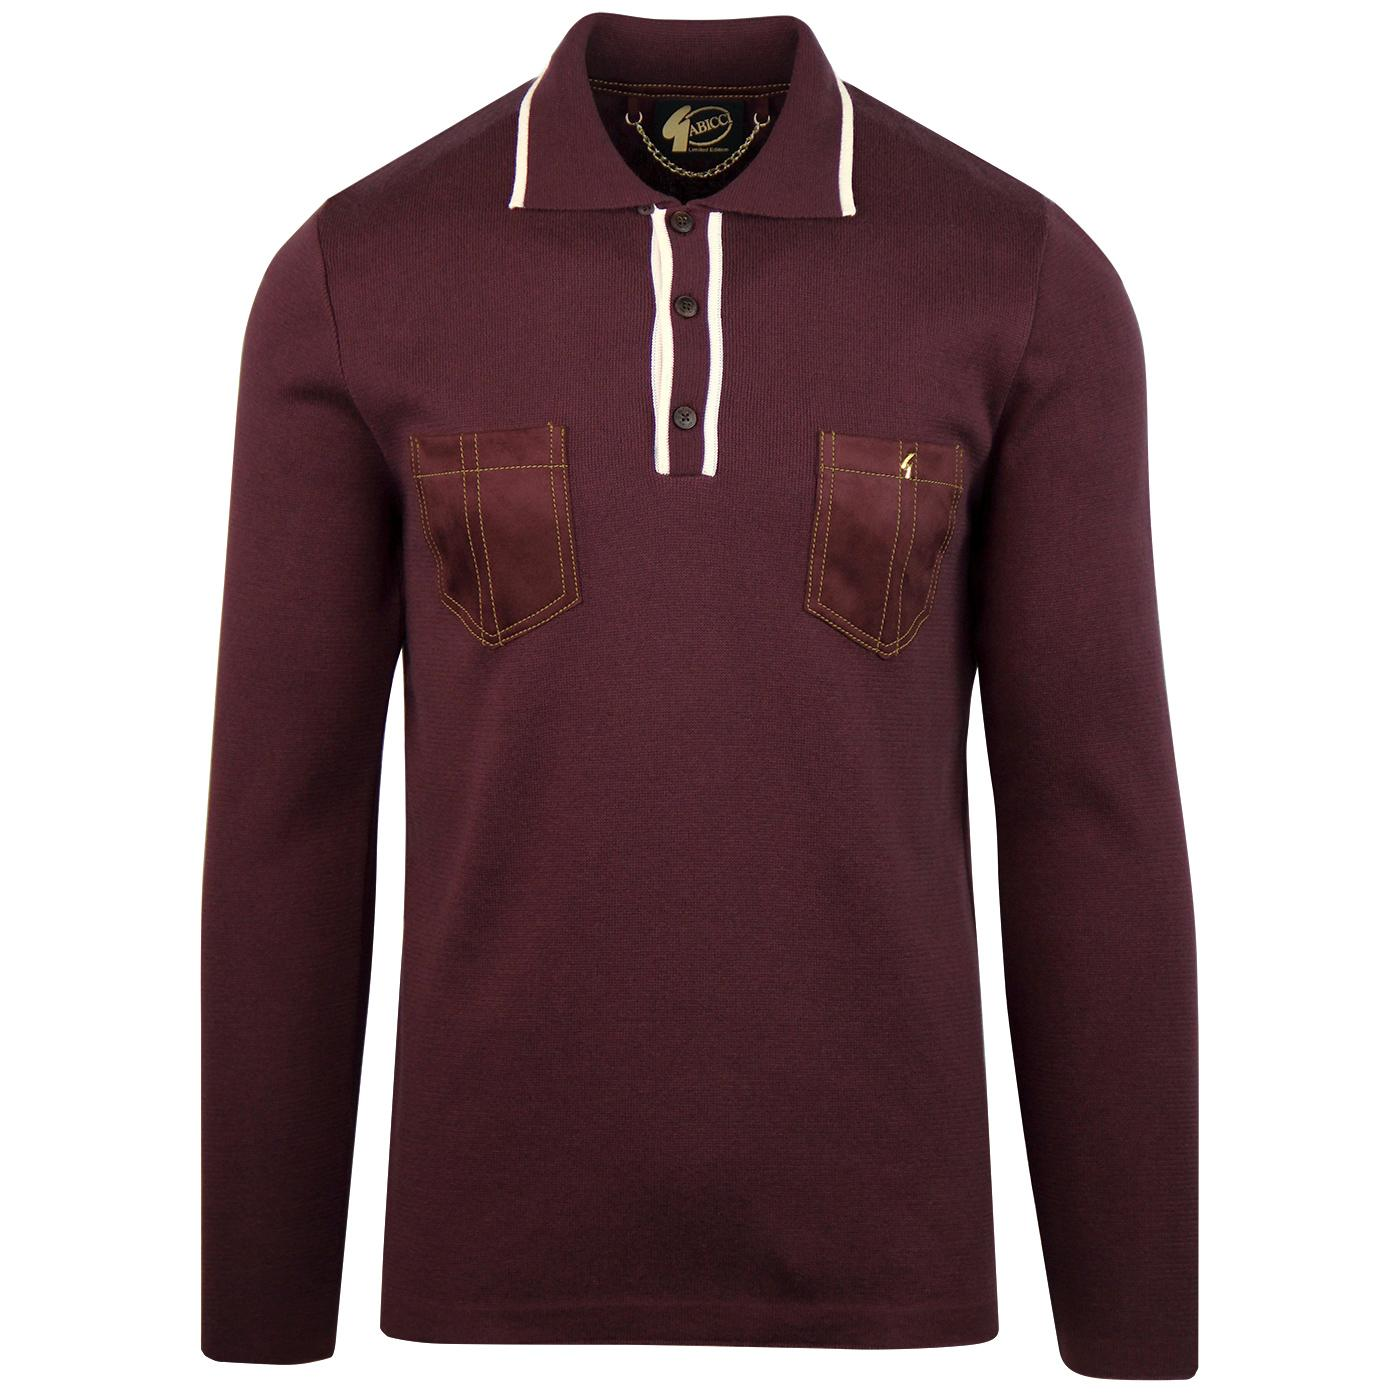 Hachet GABICCI VINTAGE Ltd Edition Knitted Polo